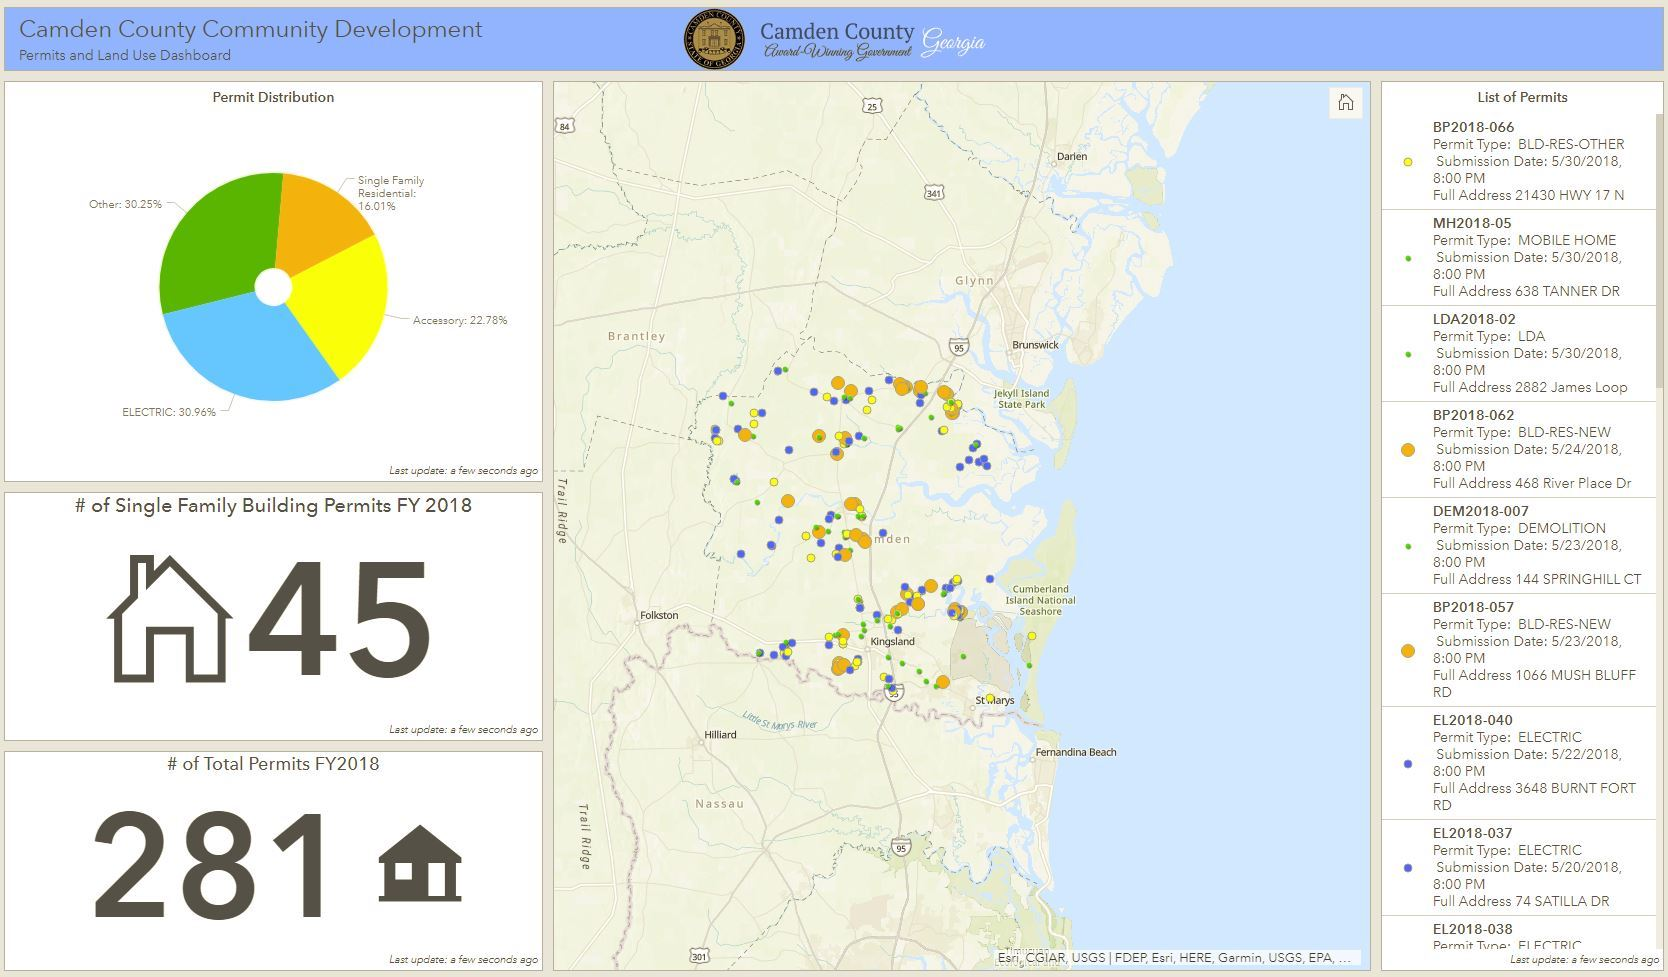 Permitting Dashboard Sample Image Showing Map and Graph